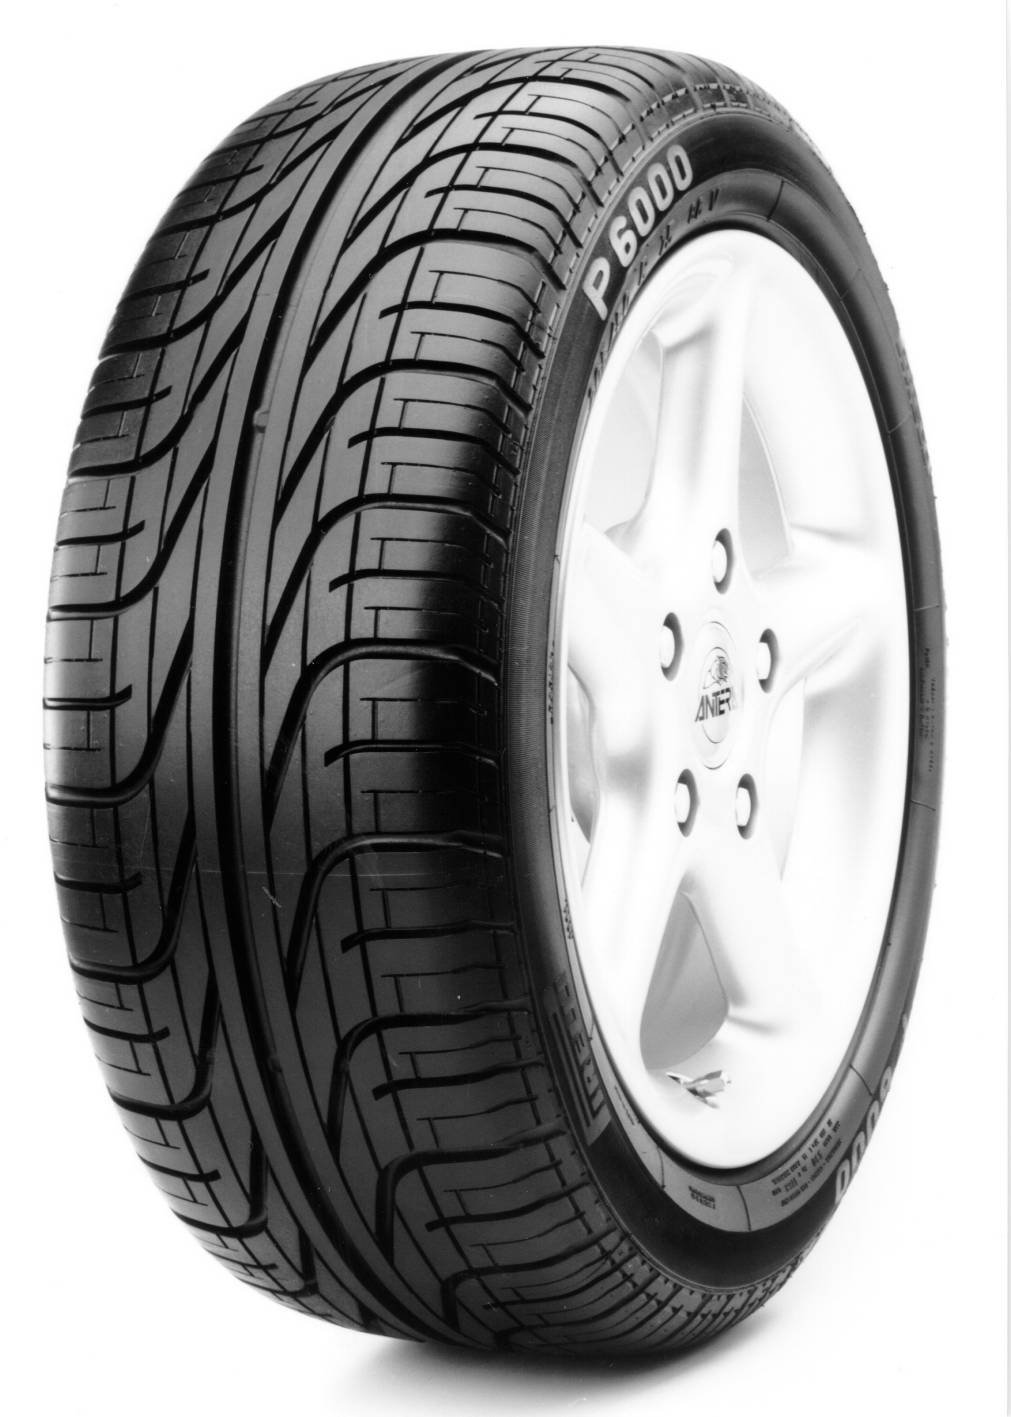 Pneu PIRELLI P6000 POWERGY 235/50R17 96 Y